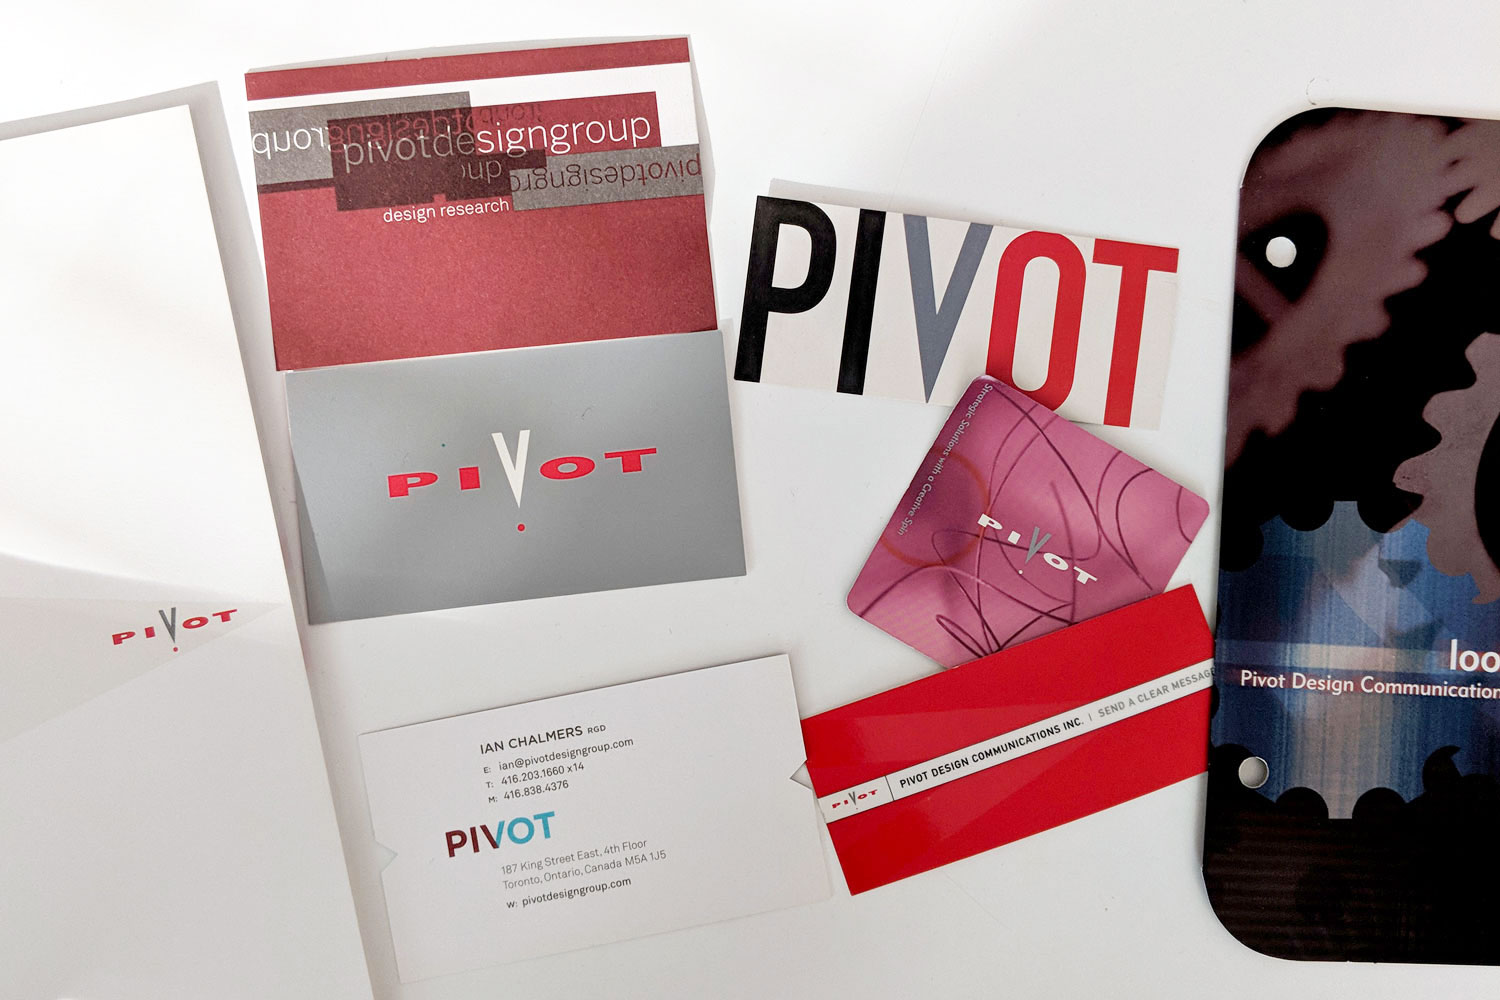 Pivoting Through The Years: Pivot Turns 20!